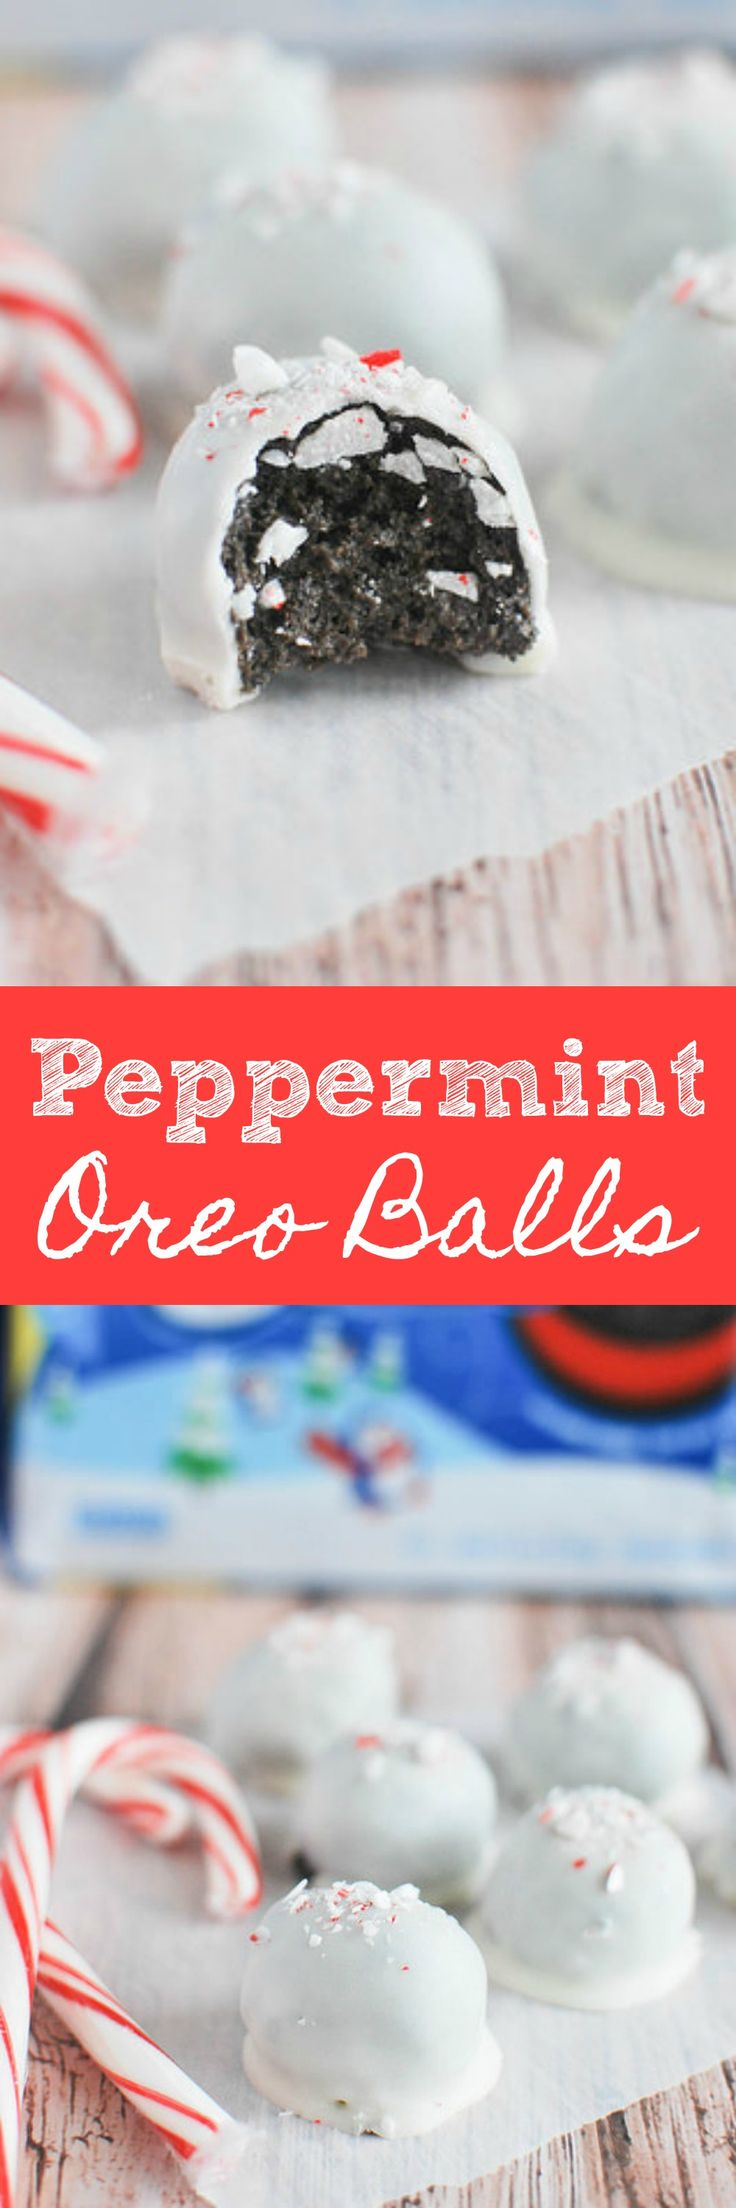 Peppermint Oreo Balls - your favorite oreo balls with a wintery twist! Only 3 ingredients!